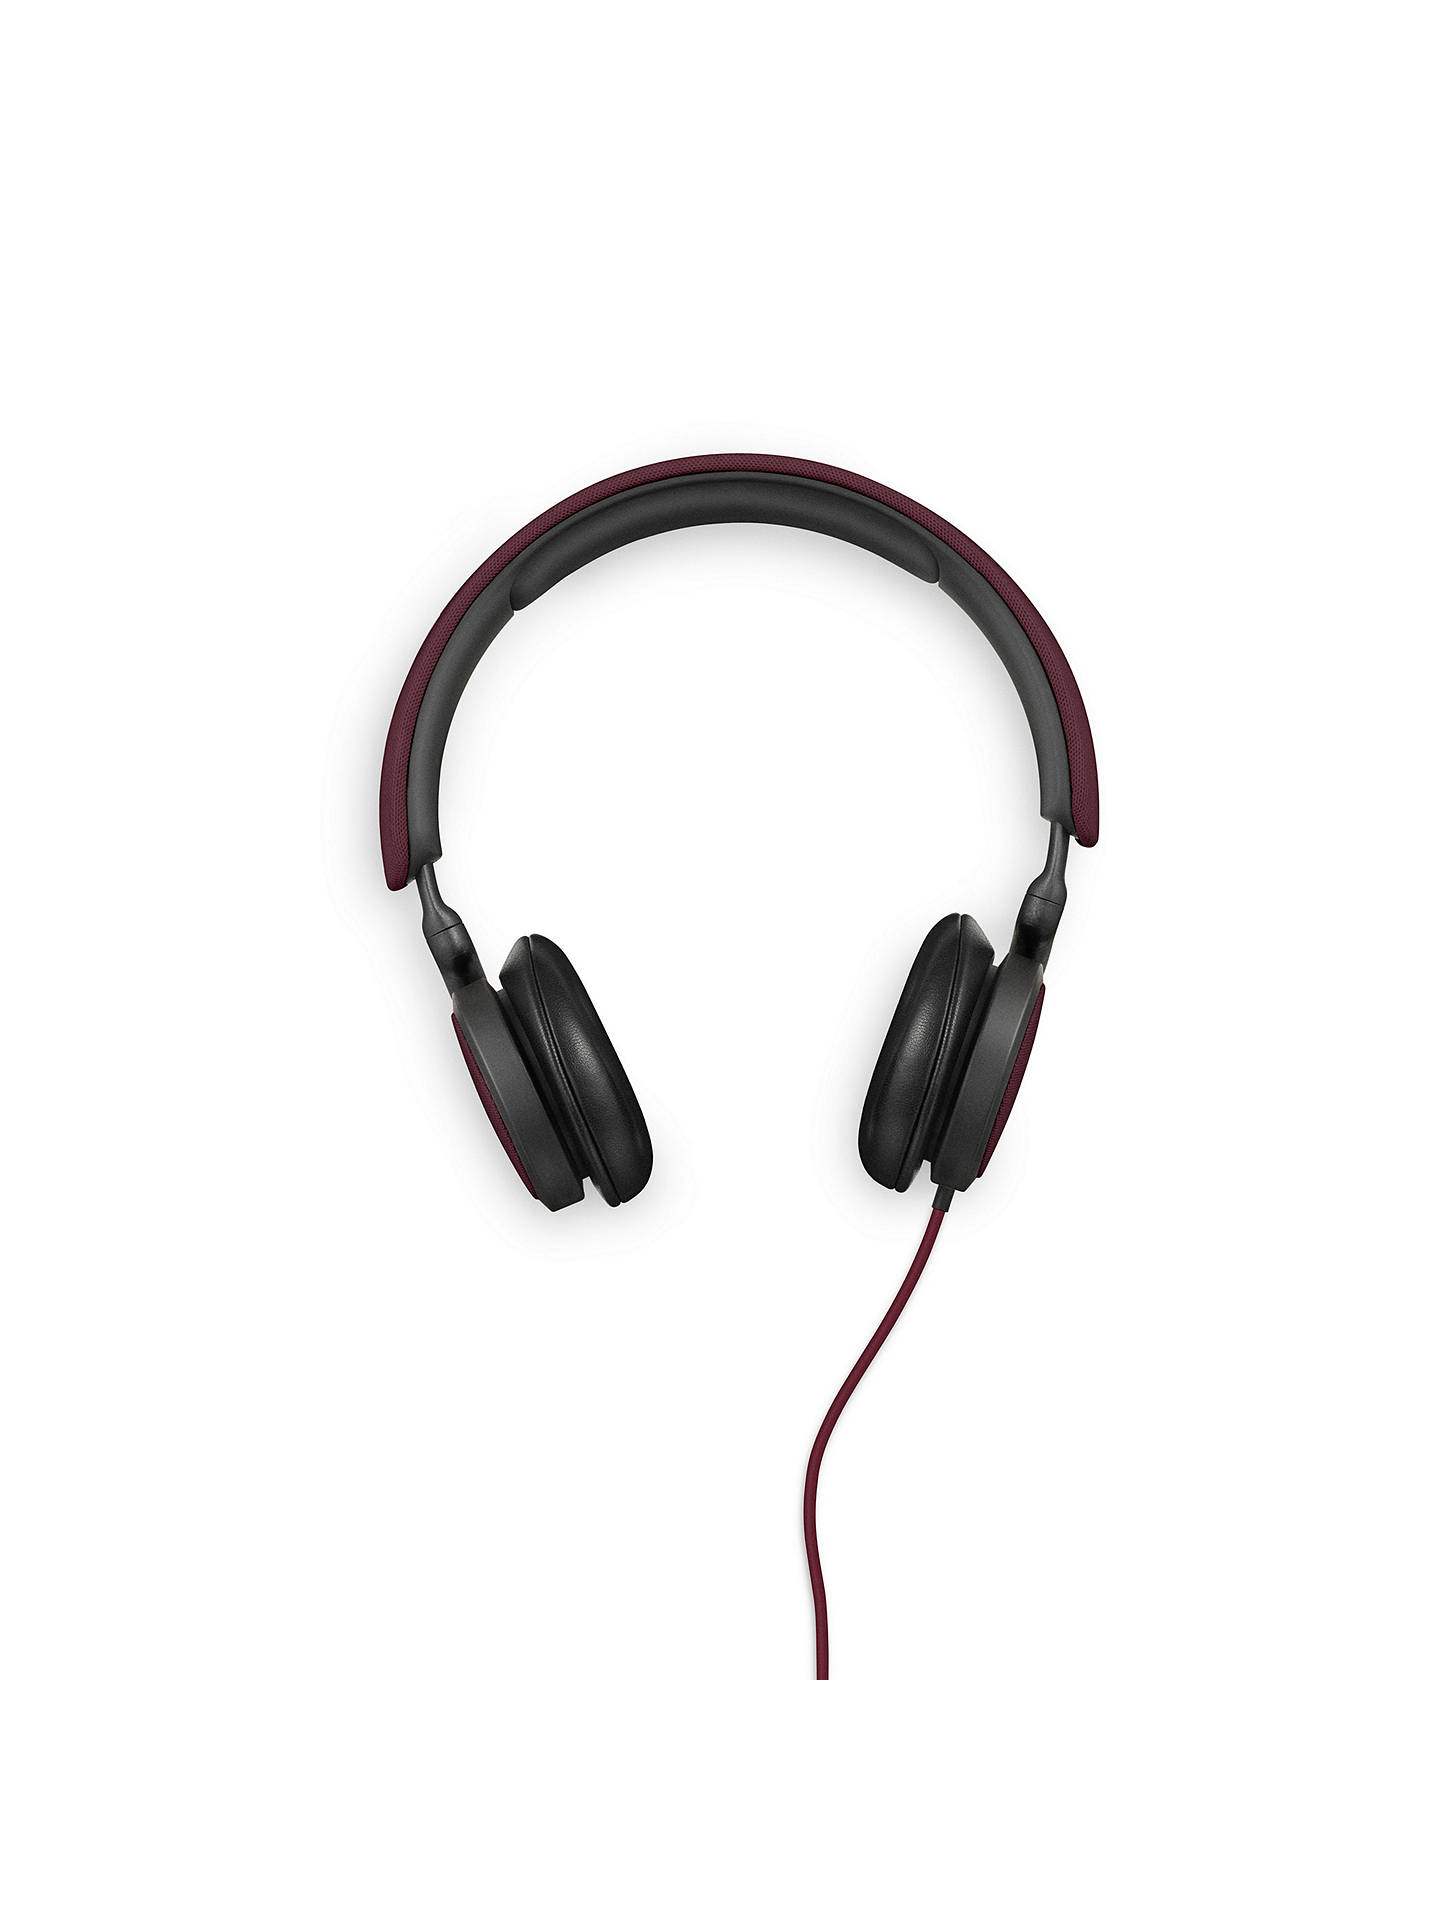 Bang & Olufsen Beoplay H2 On-Ear Headphones with Mic